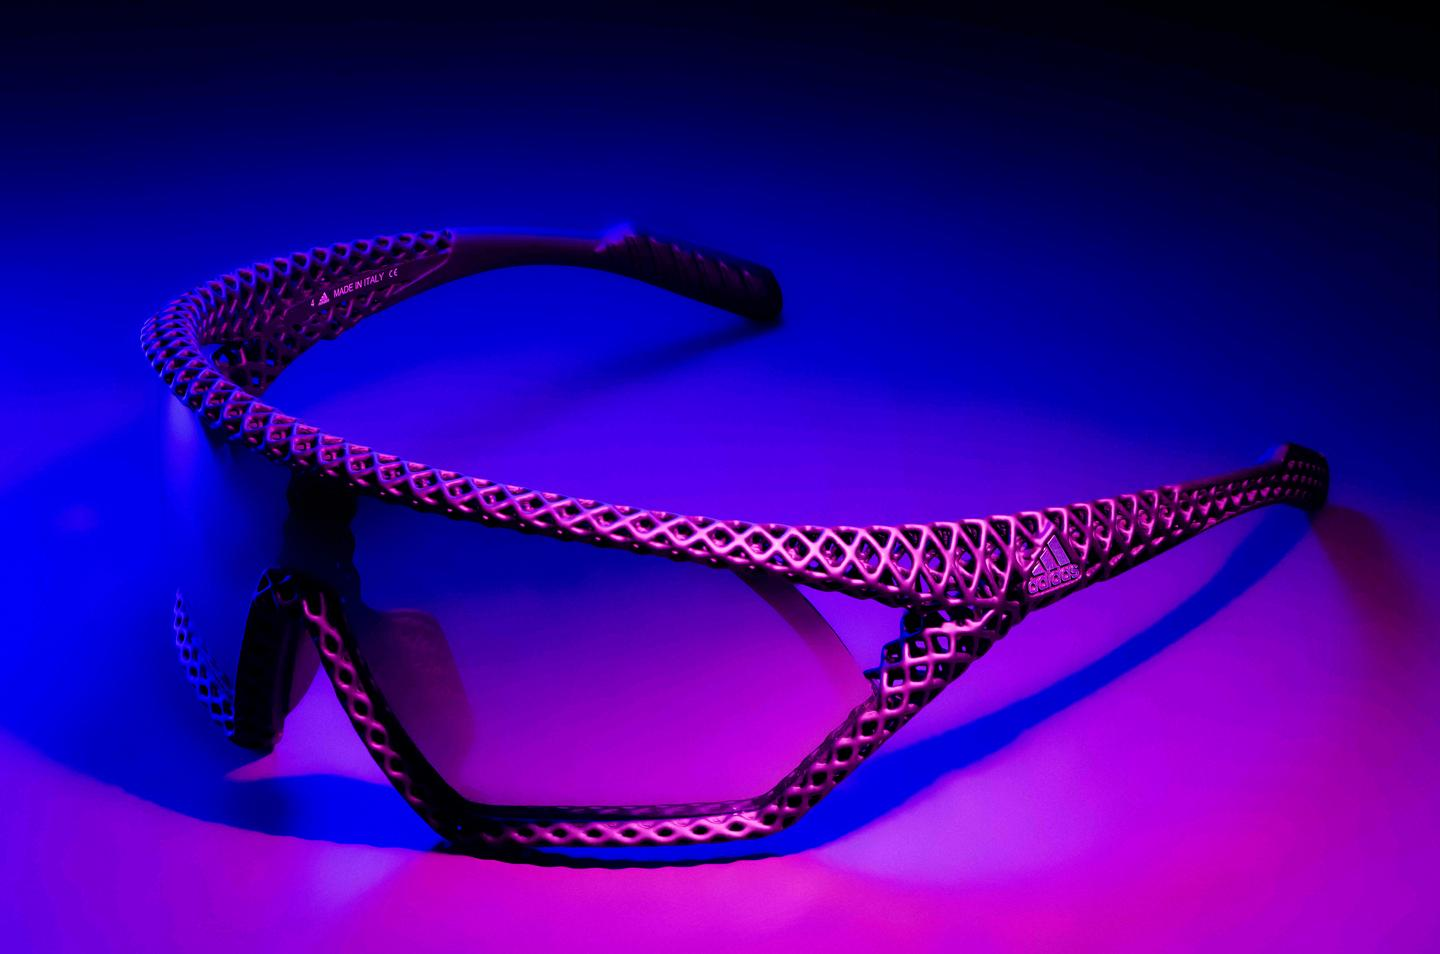 The Adidas 3D CMPT sunglasses will be priced at US$415 a pair